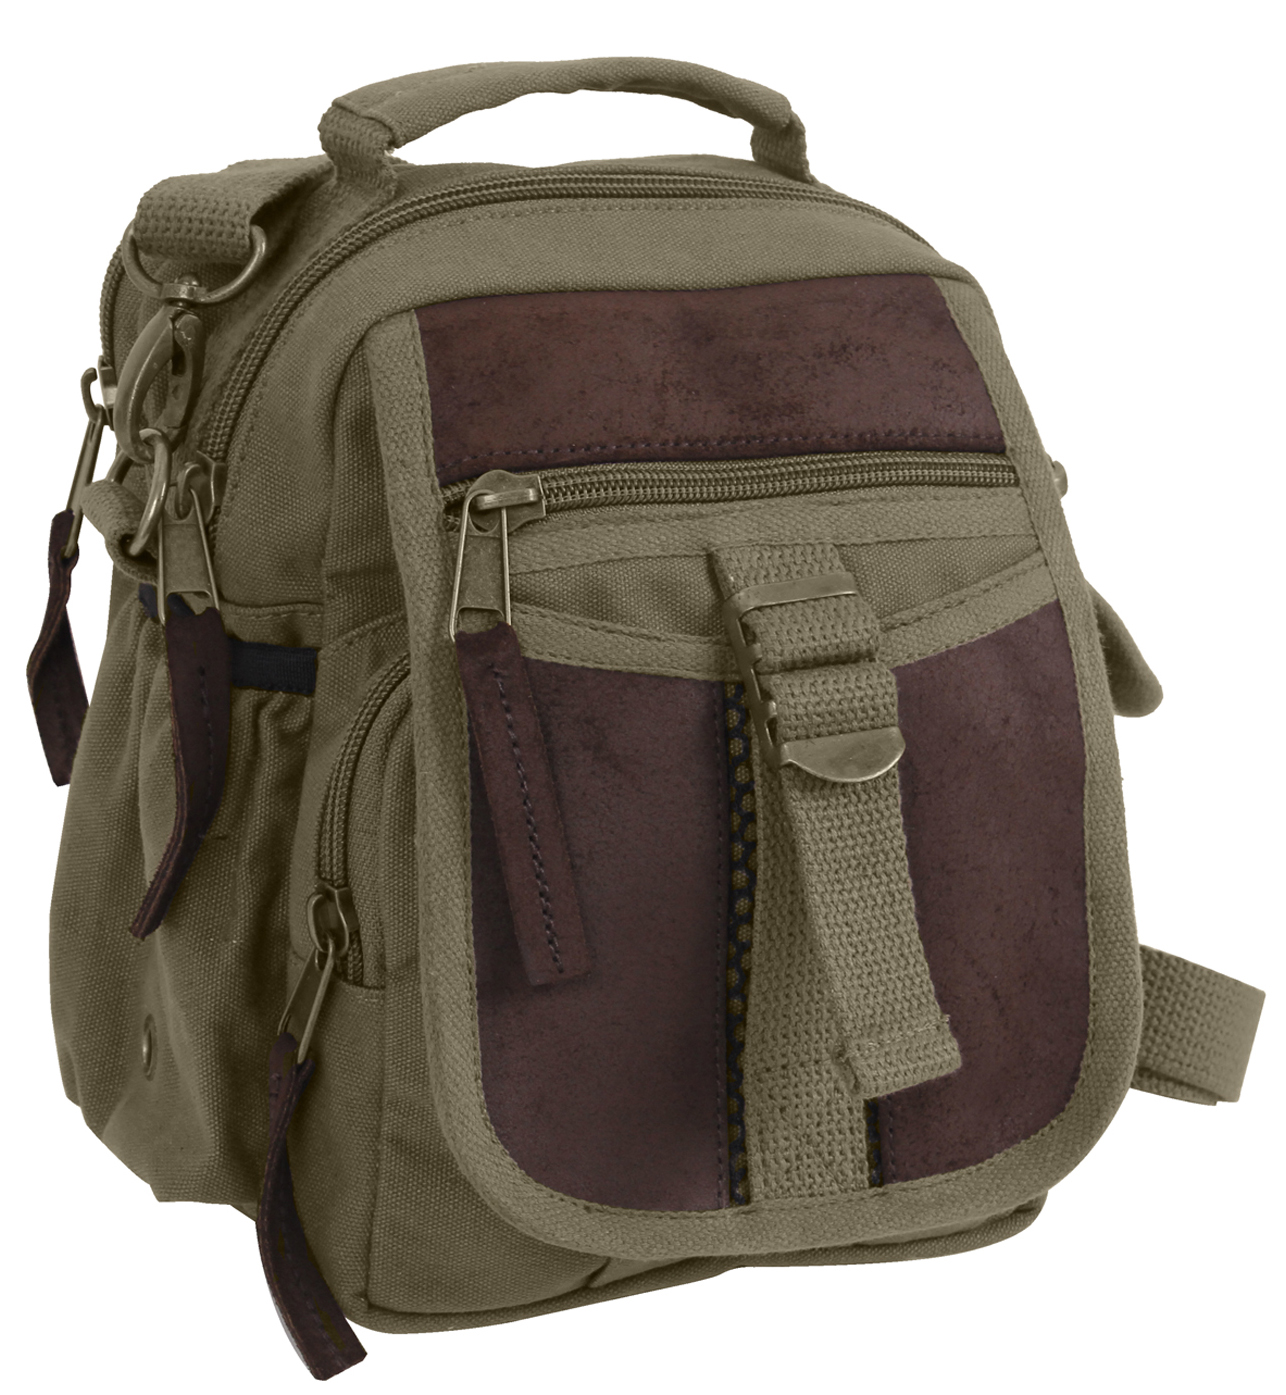 travel,leather,bag,shoulder,canvas,OD,Olive,Drab